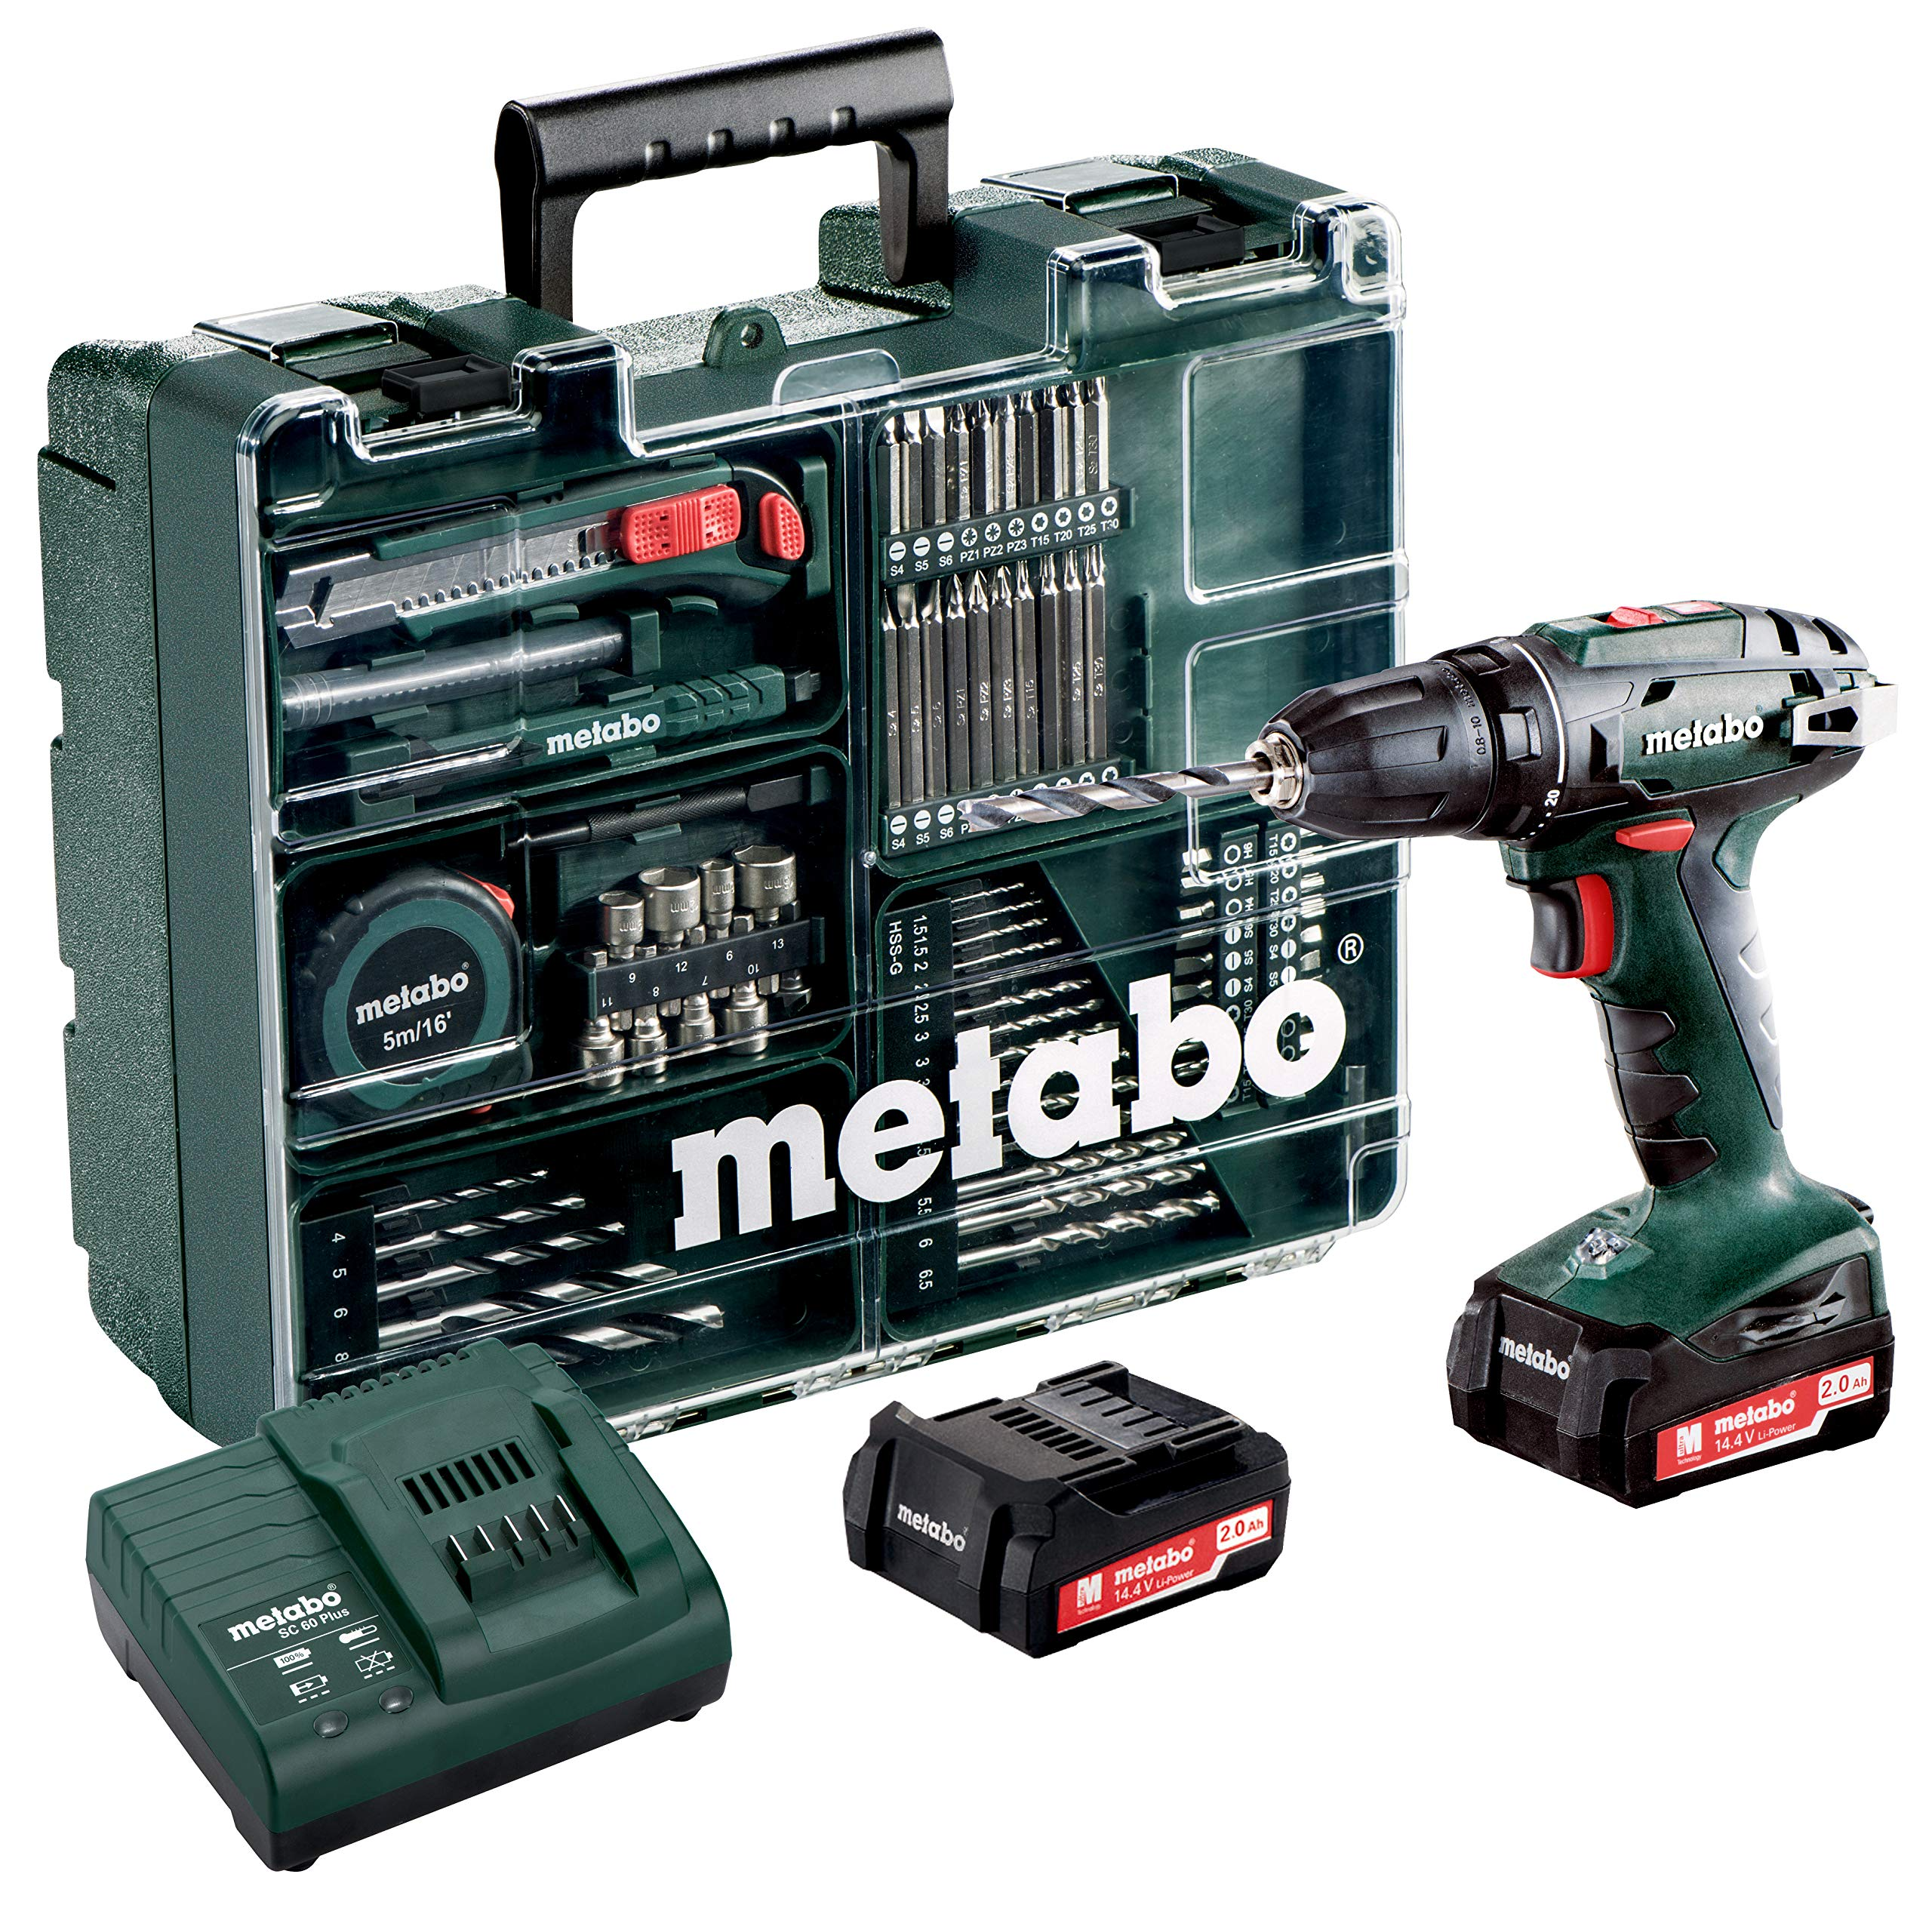 Metabo-60220688-144-Set-Workshop-74-Acc-BS-144-Mobile-Werkstatt-20-Ah-10-mm-SC-60-Plus-144-V-Metabo-Bit-Box-32-TLG-626700000-gemischt-PHPZTXInbus